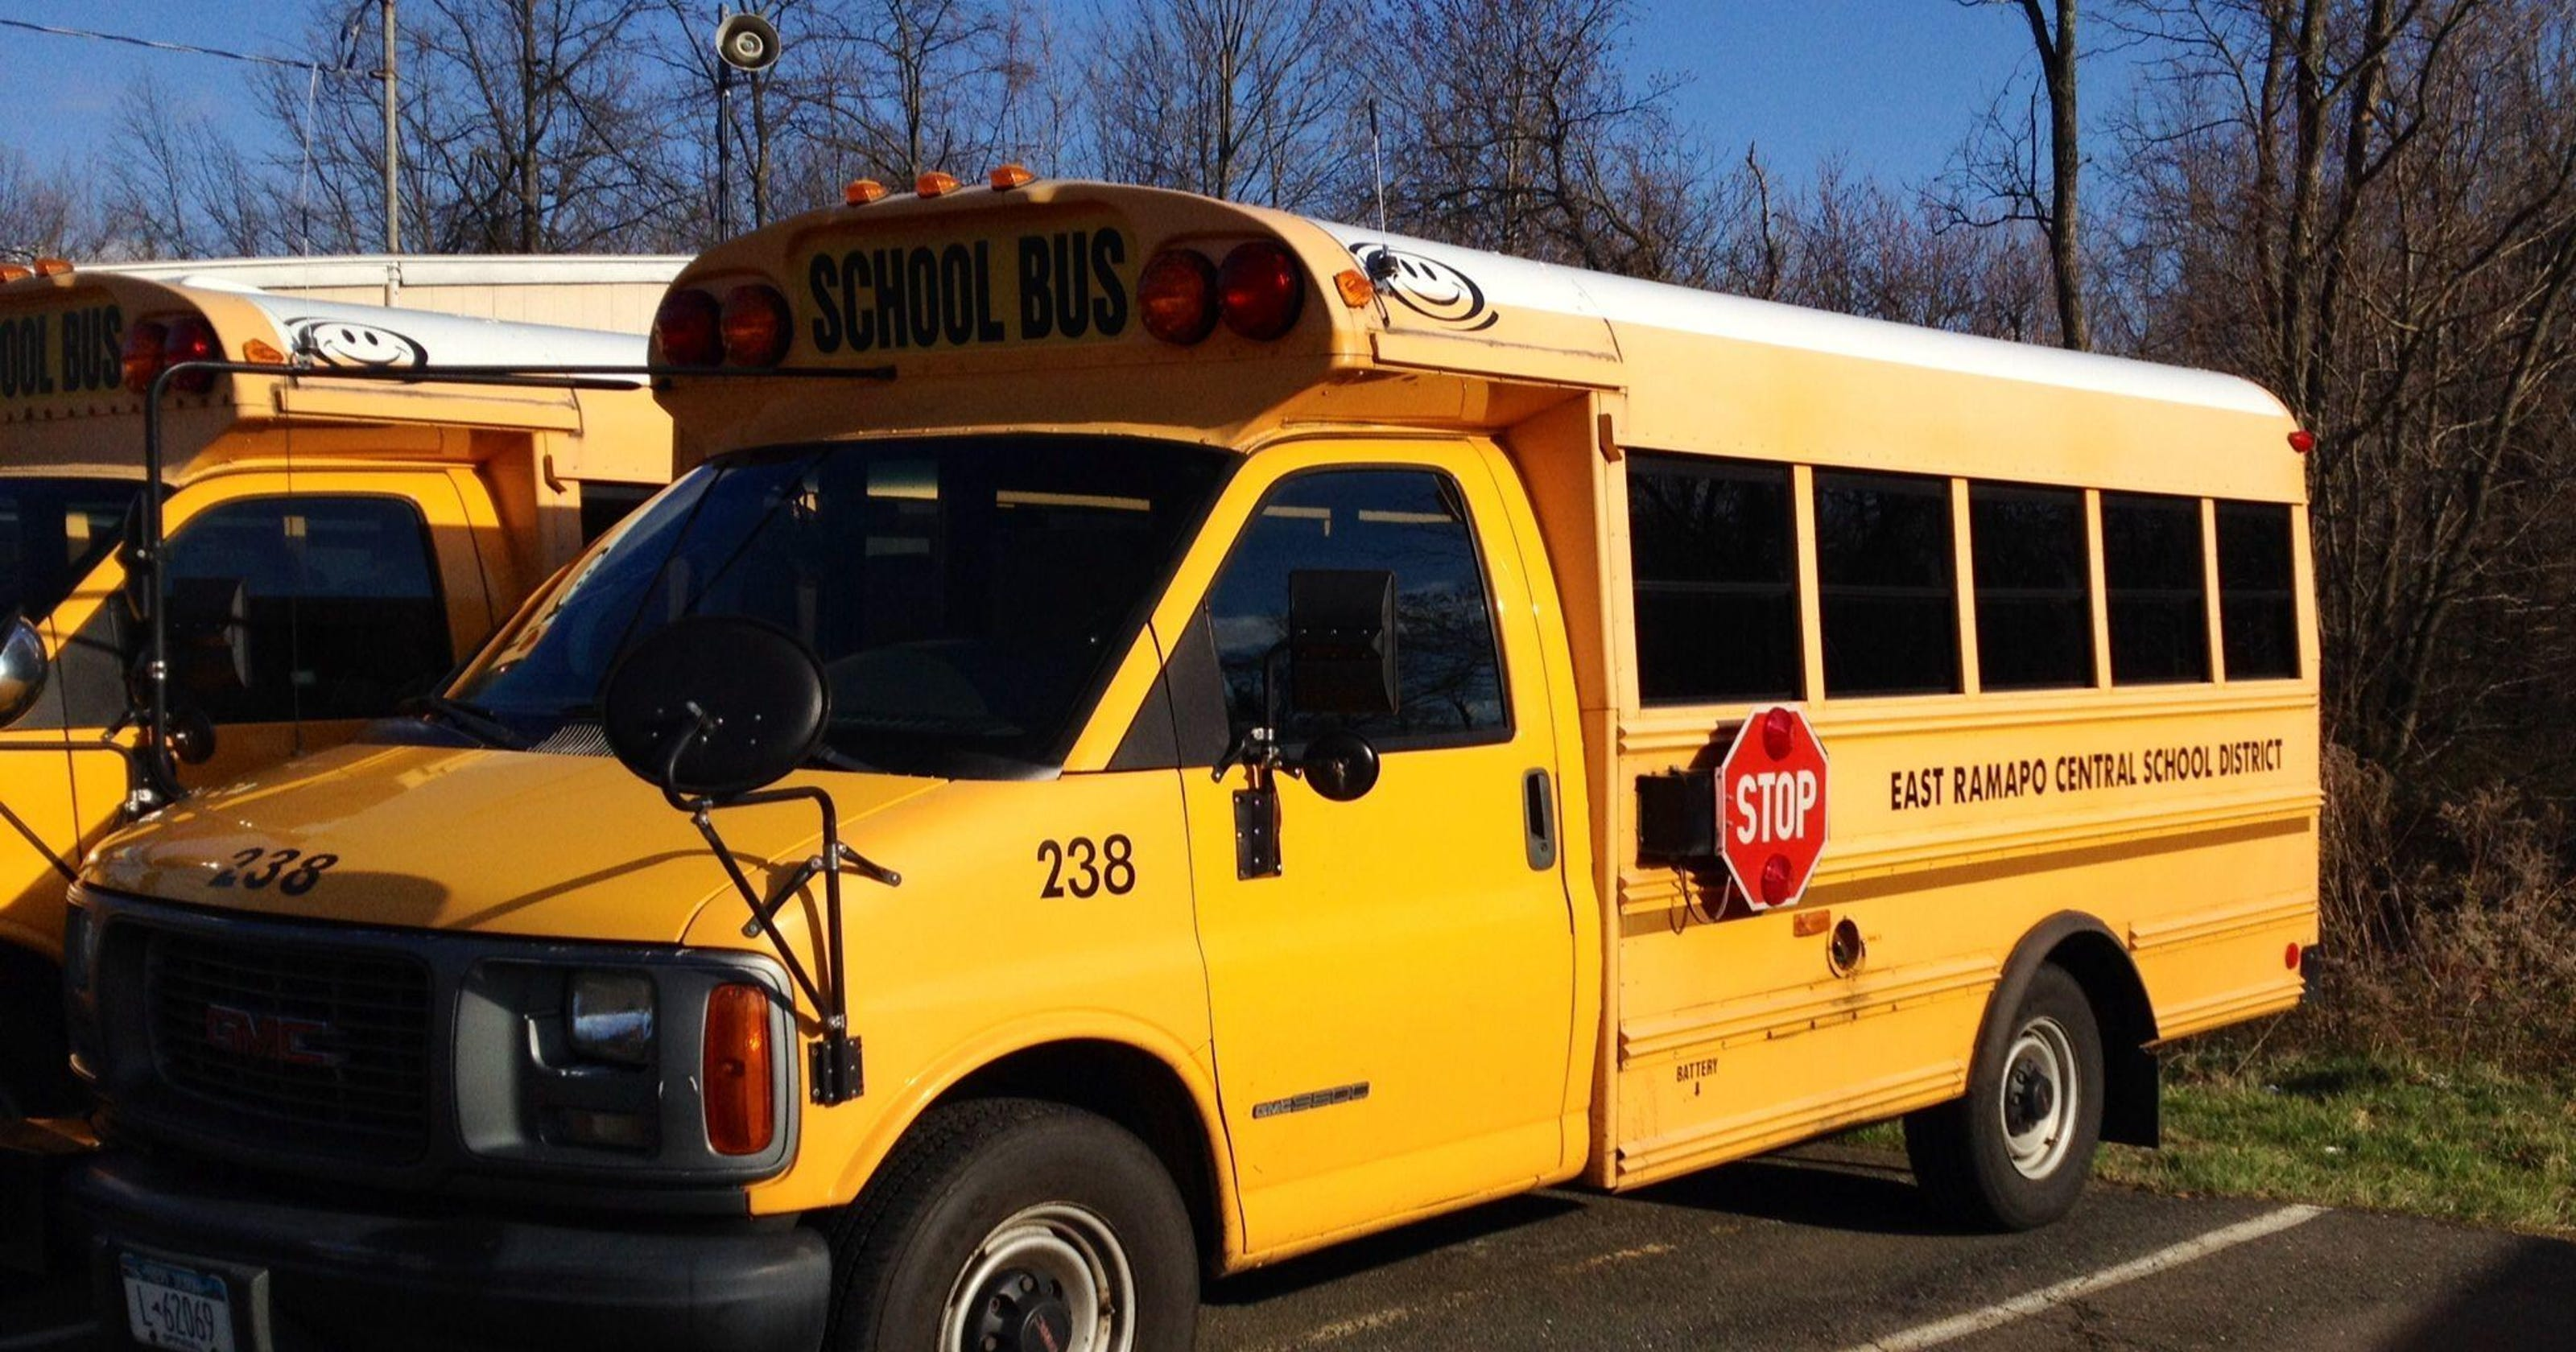 School bus drivers to receive random drug testing in New York